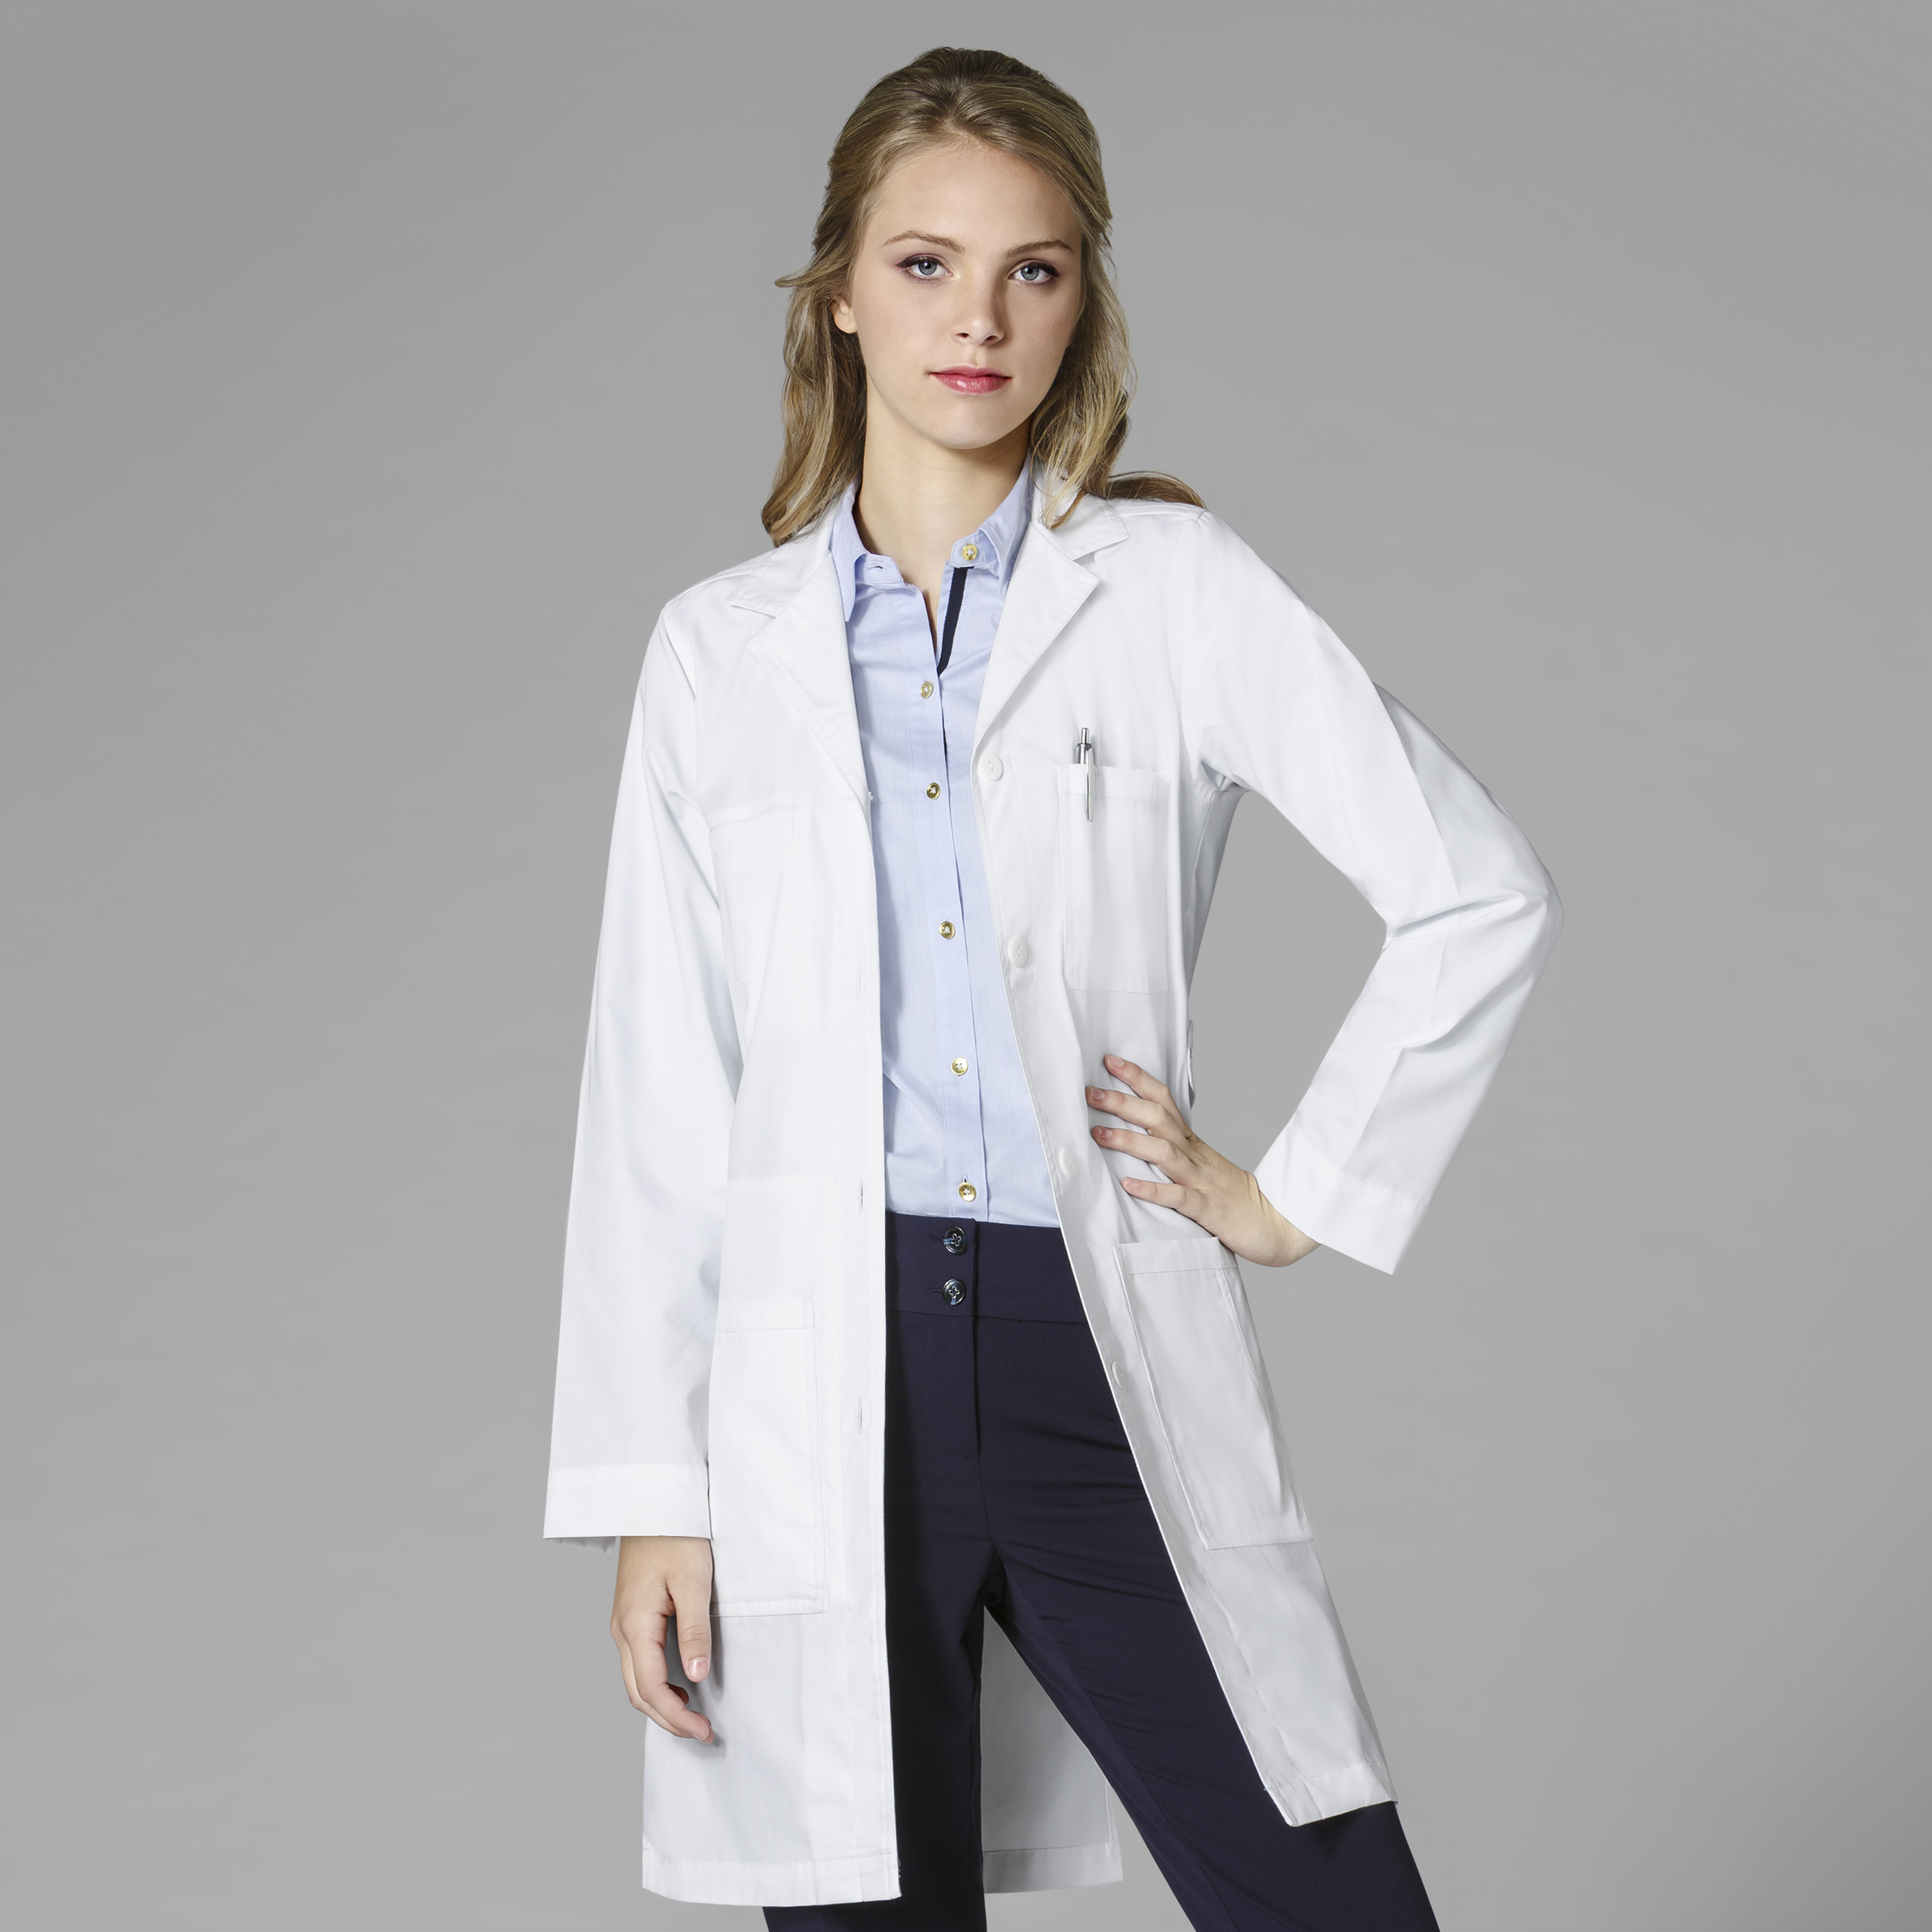 LabCoat-WW-7607